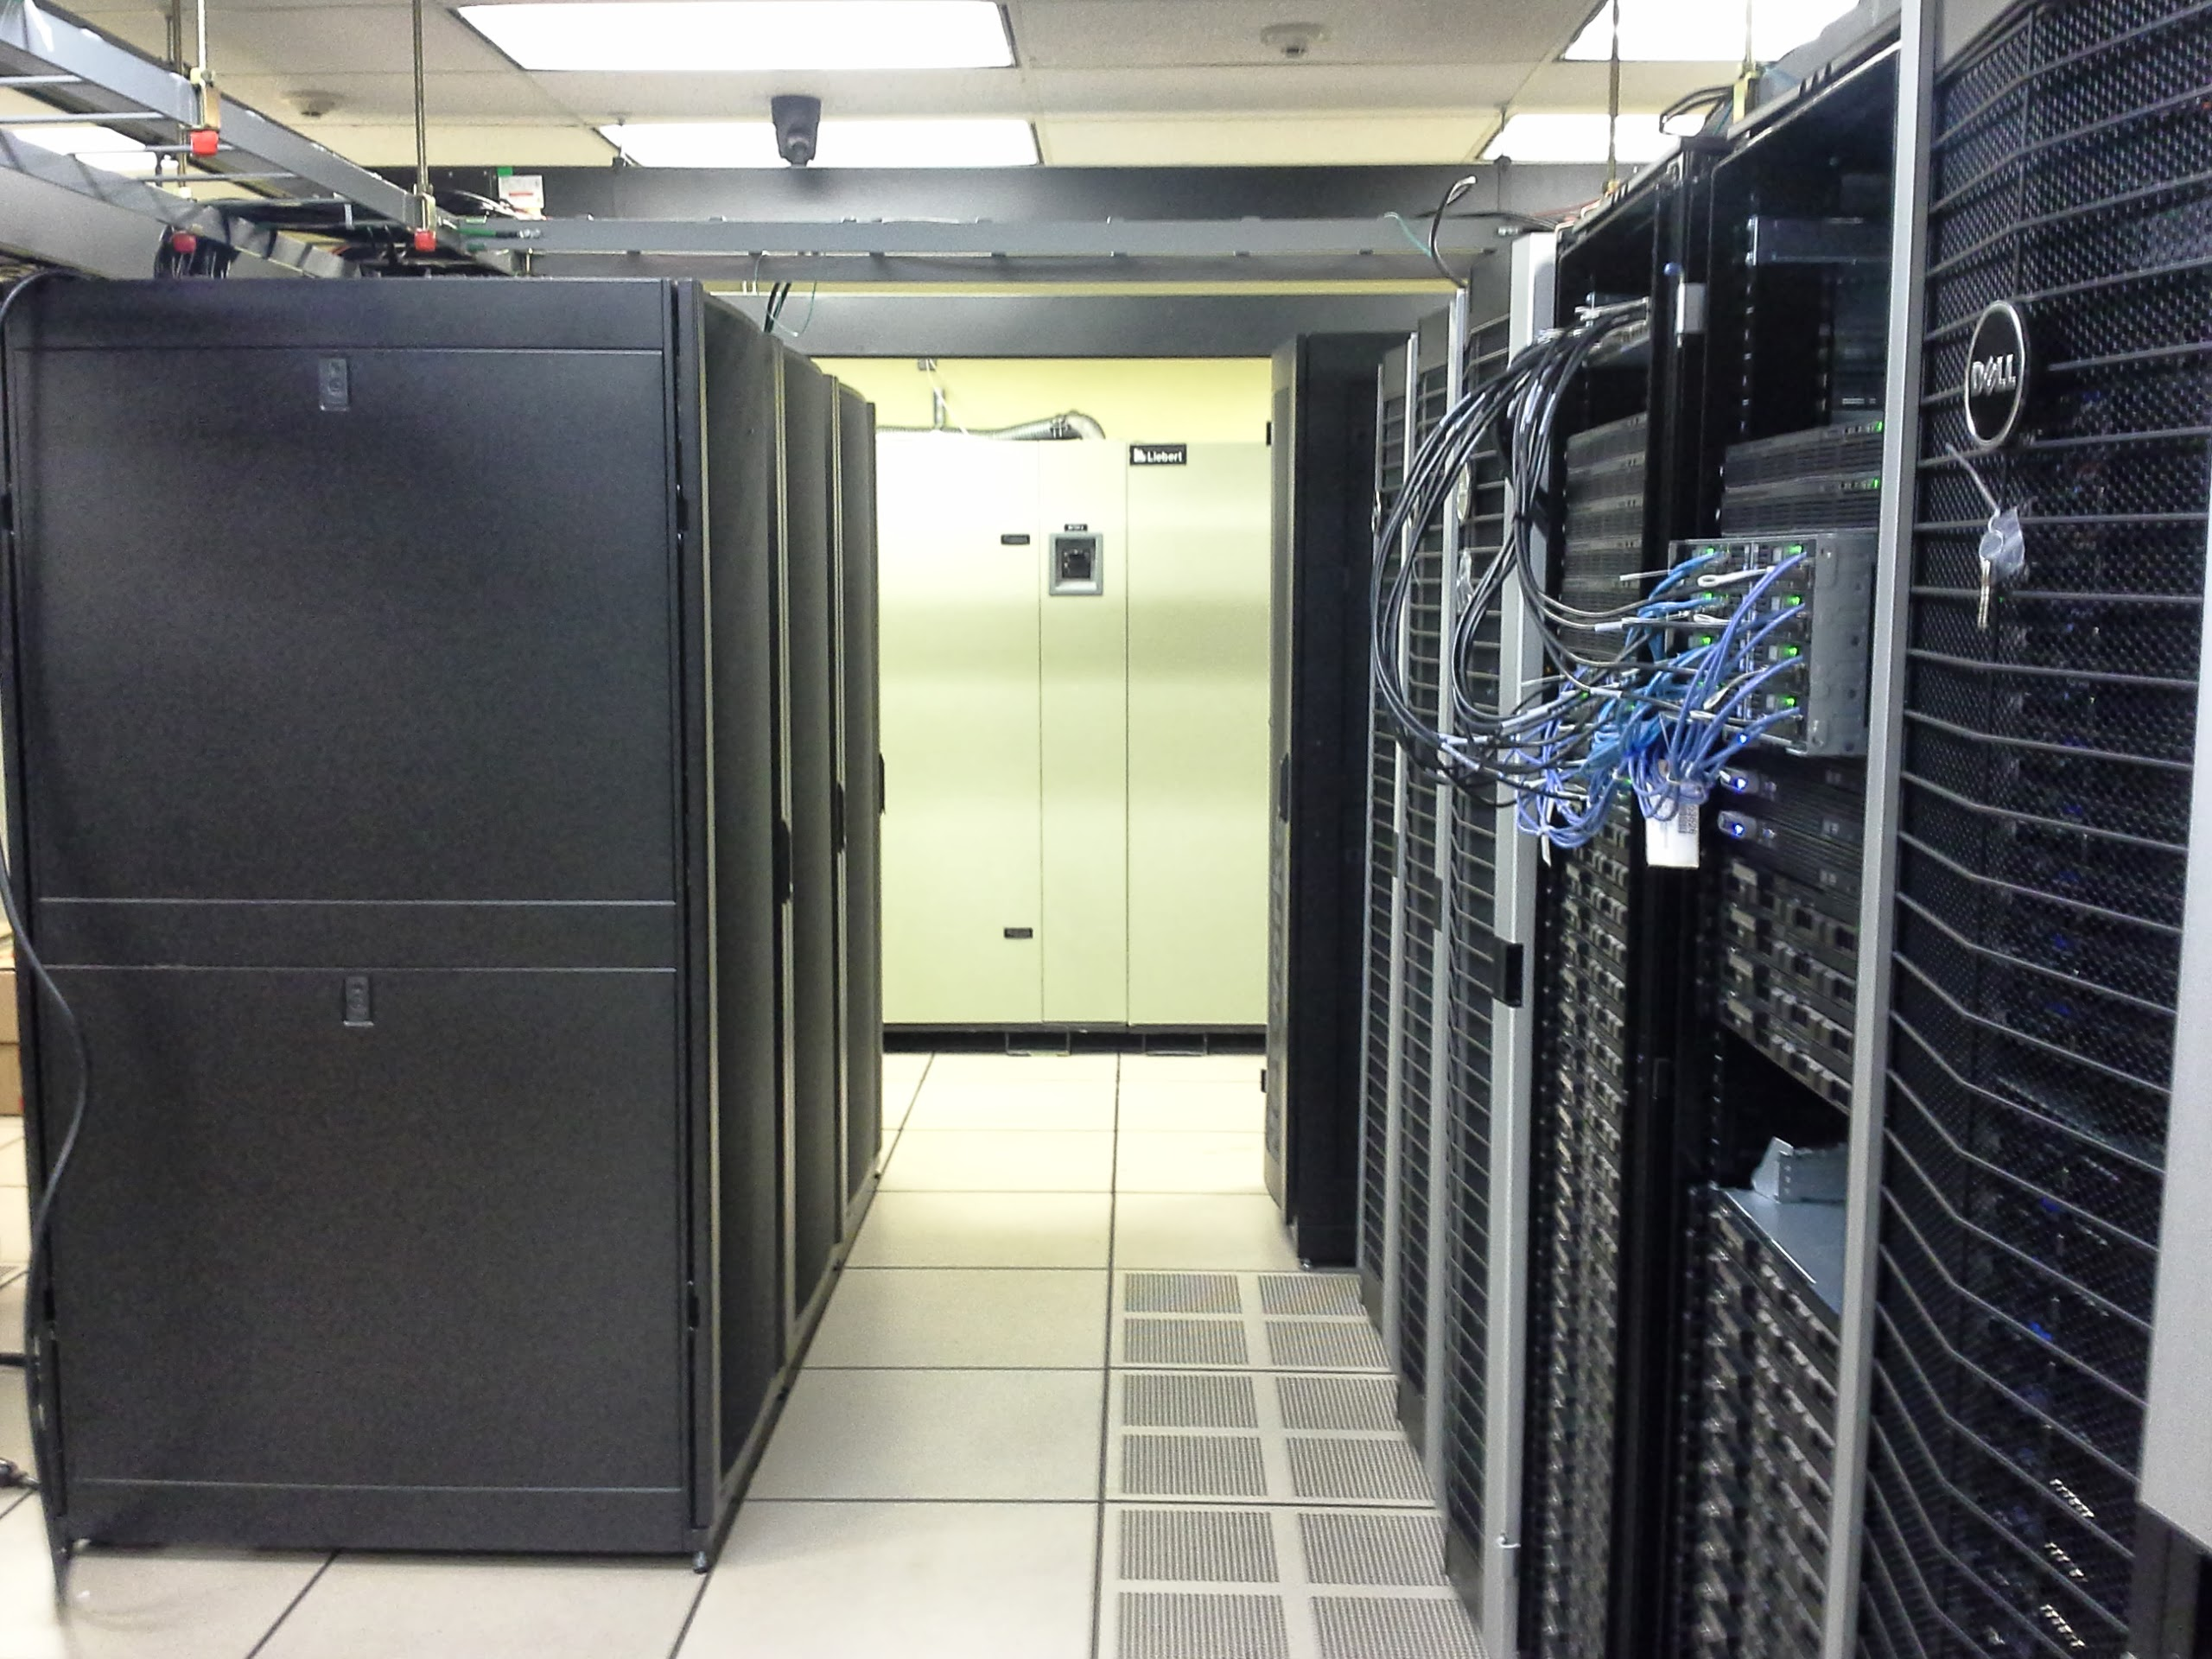 Caption: Modeling an entire ecosystem is so complex, it needs this supercomputing center at the University of South Florida to handle all of the data involved., Credit: Brian Smith